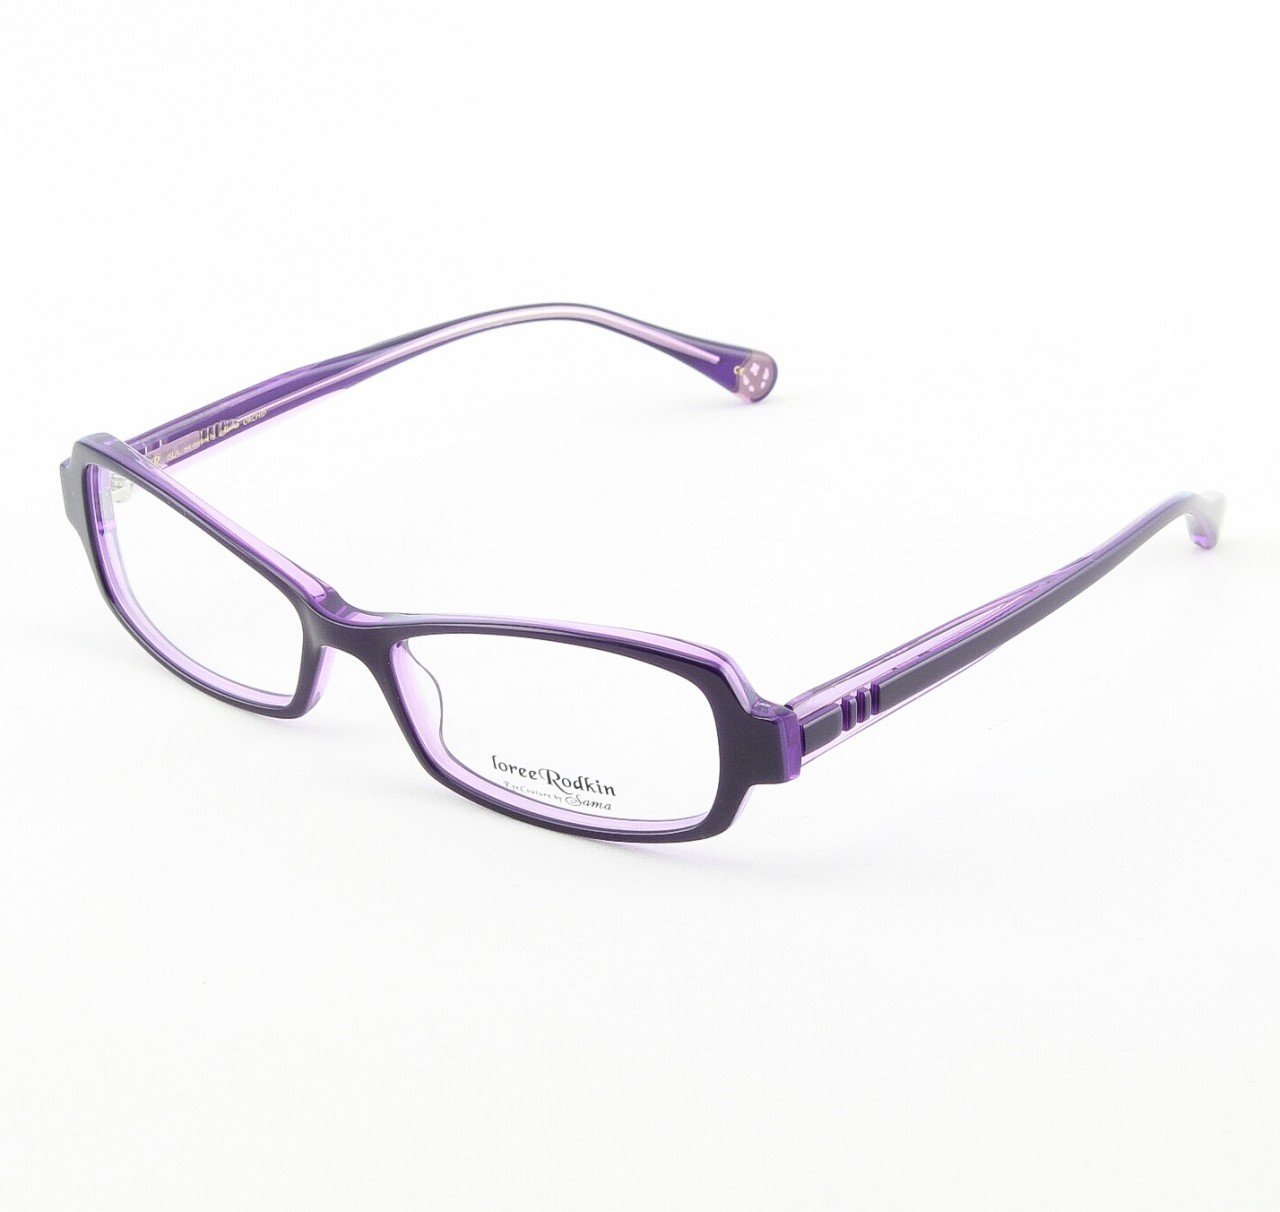 Loree Rodkin Isla Eyeglasses by Sama Col. Orchid with Clear Lenses